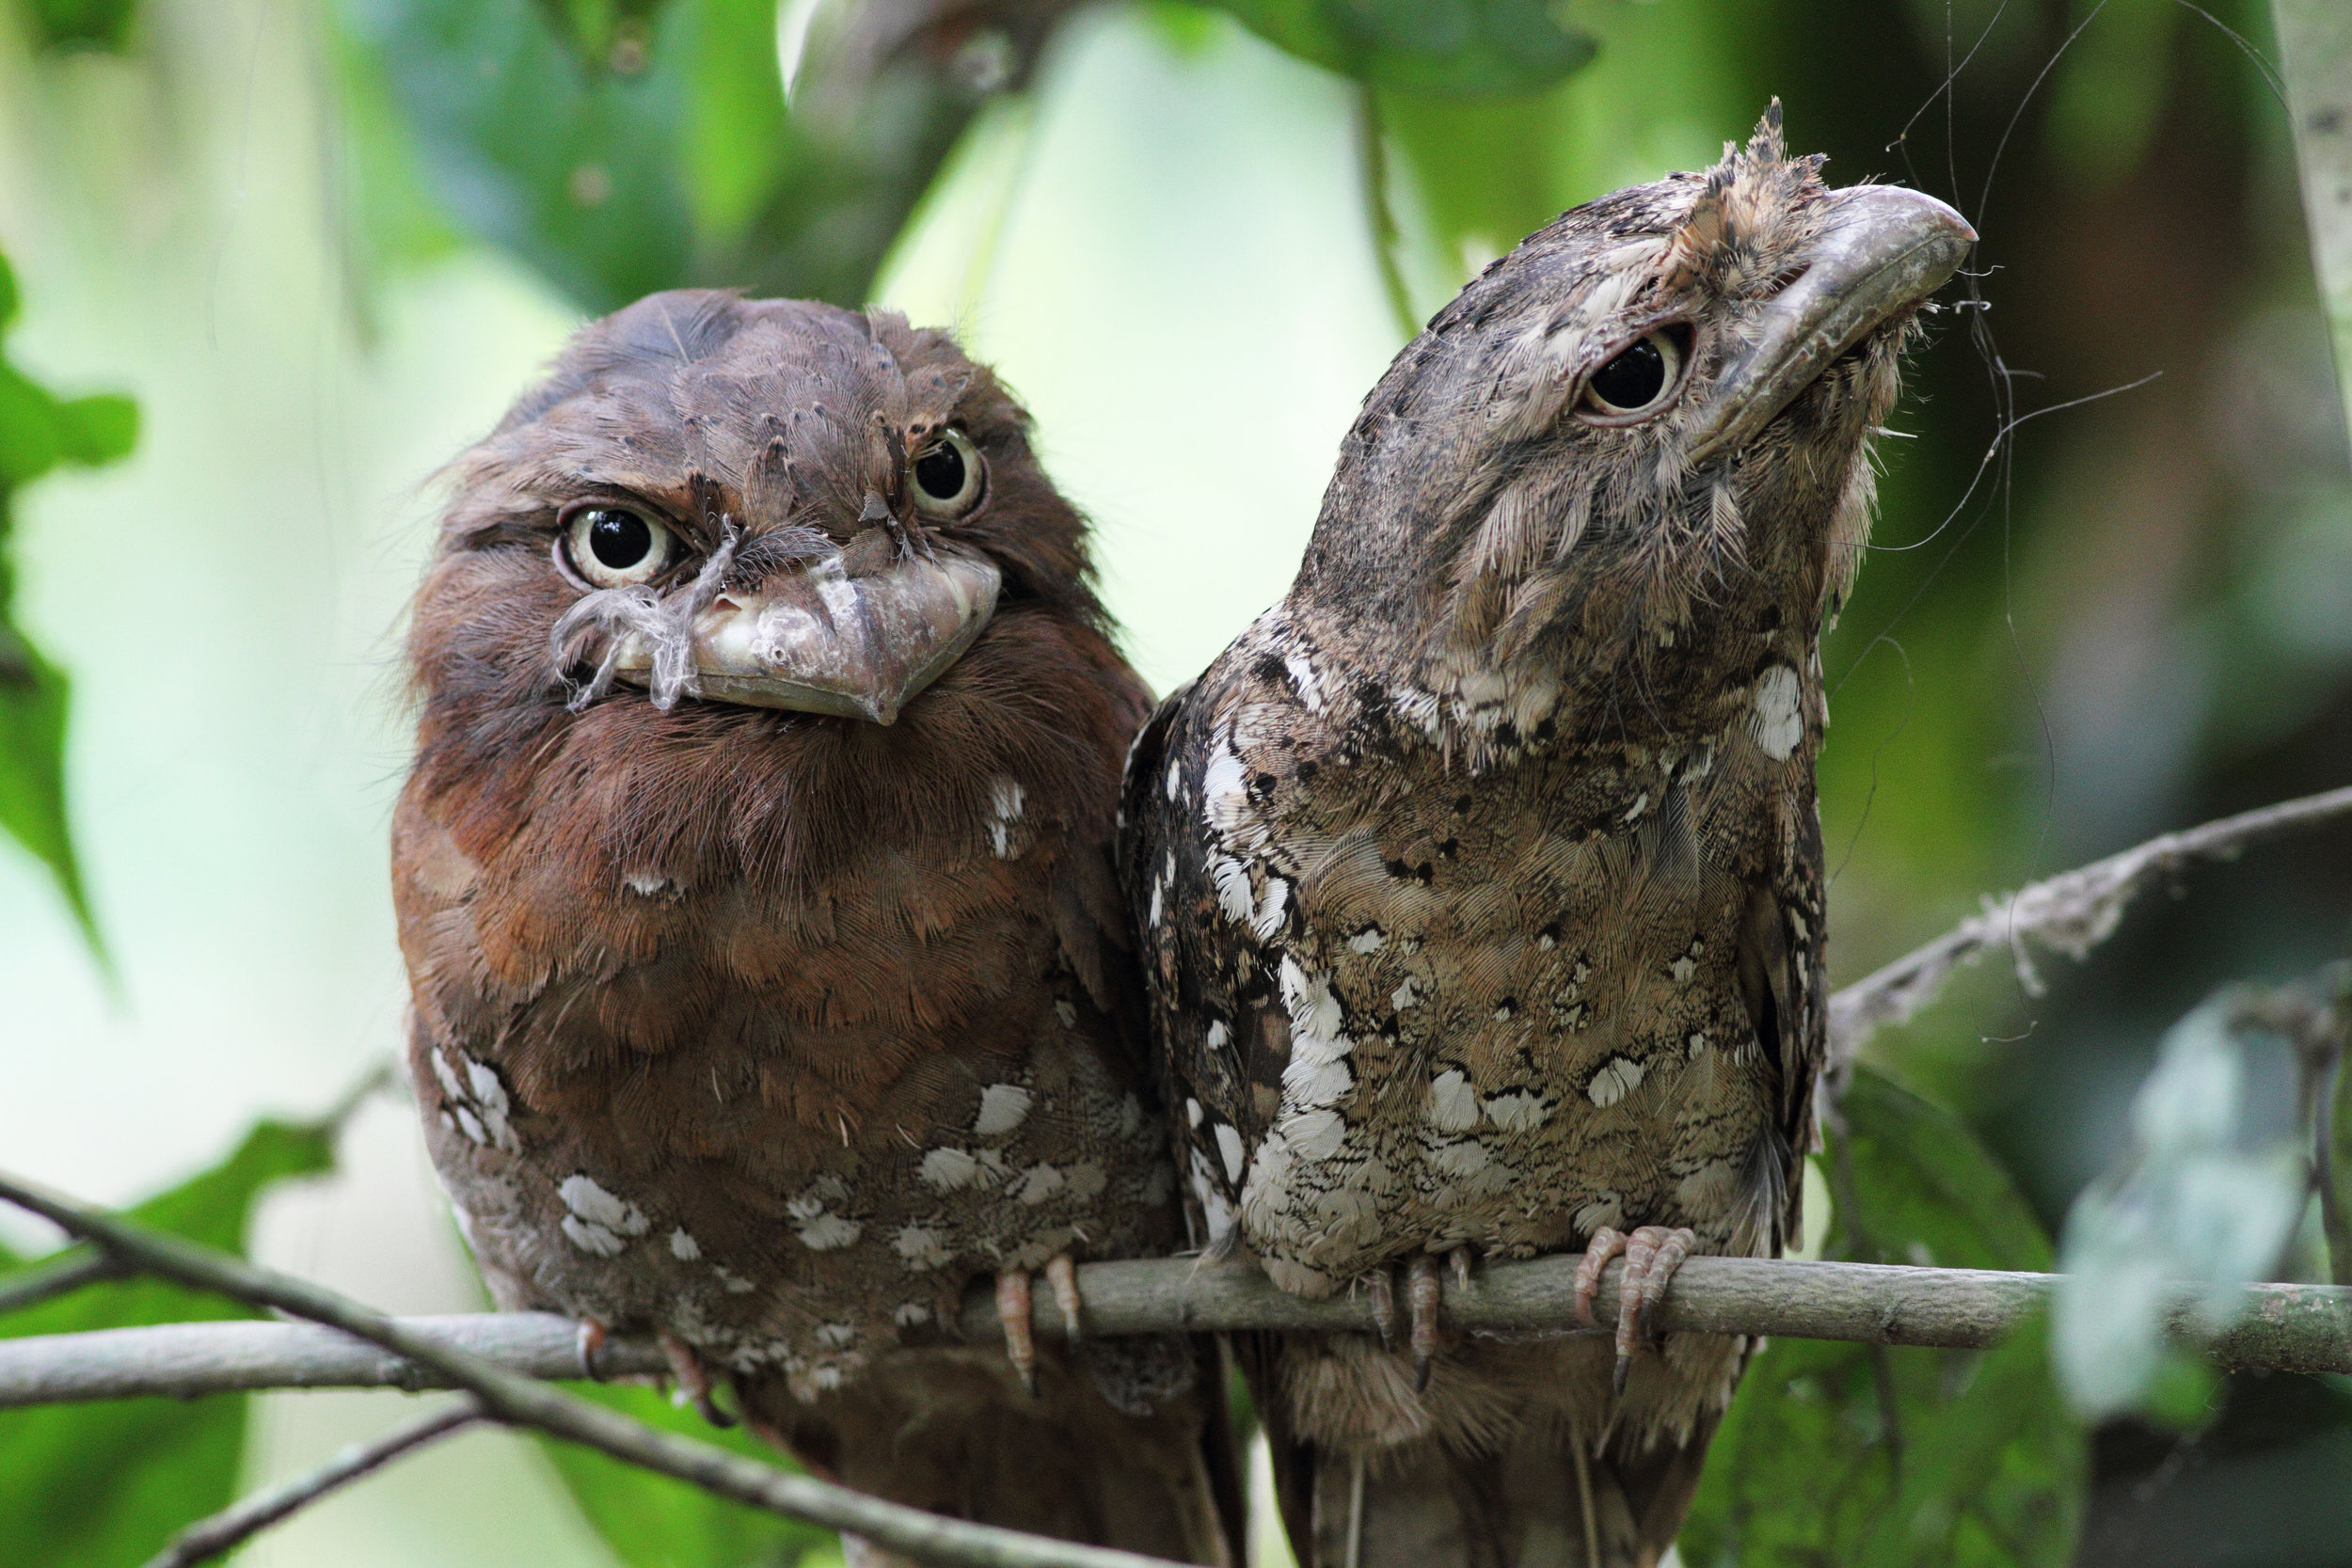 The Sri Lankan Frogmouth is a cuious looking bird